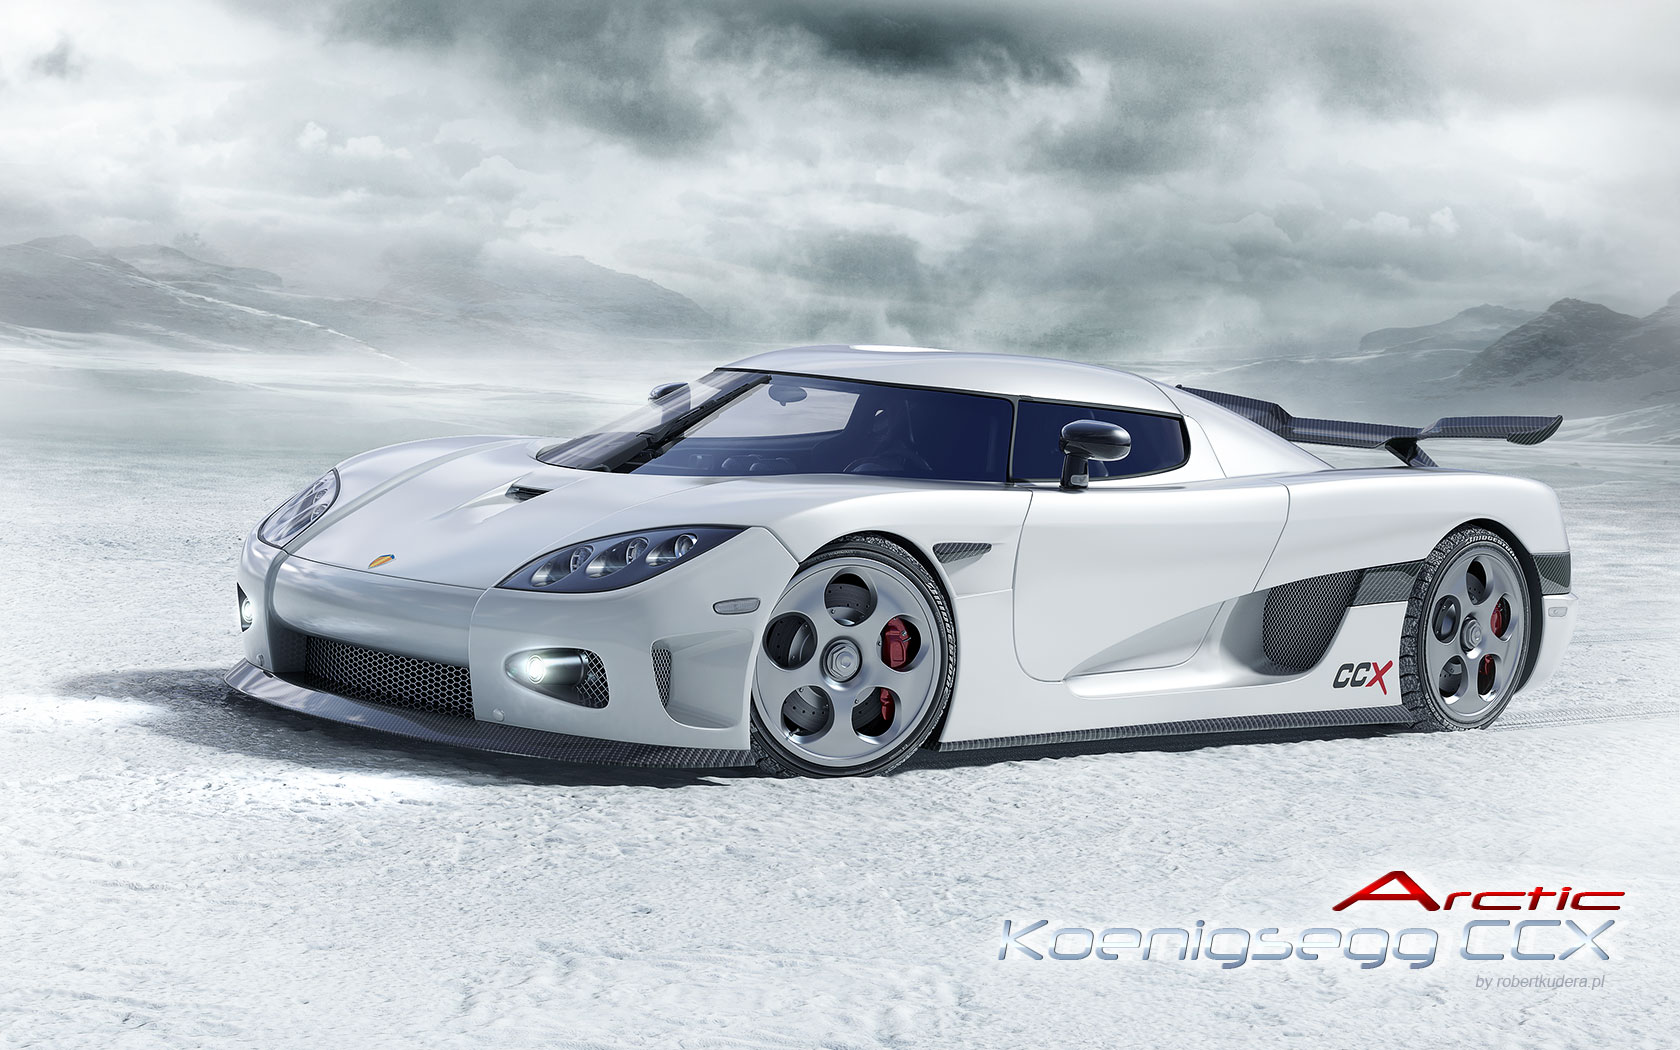 28 Koenigsegg Wallpapers for PC   GsFDcY 1680x1050